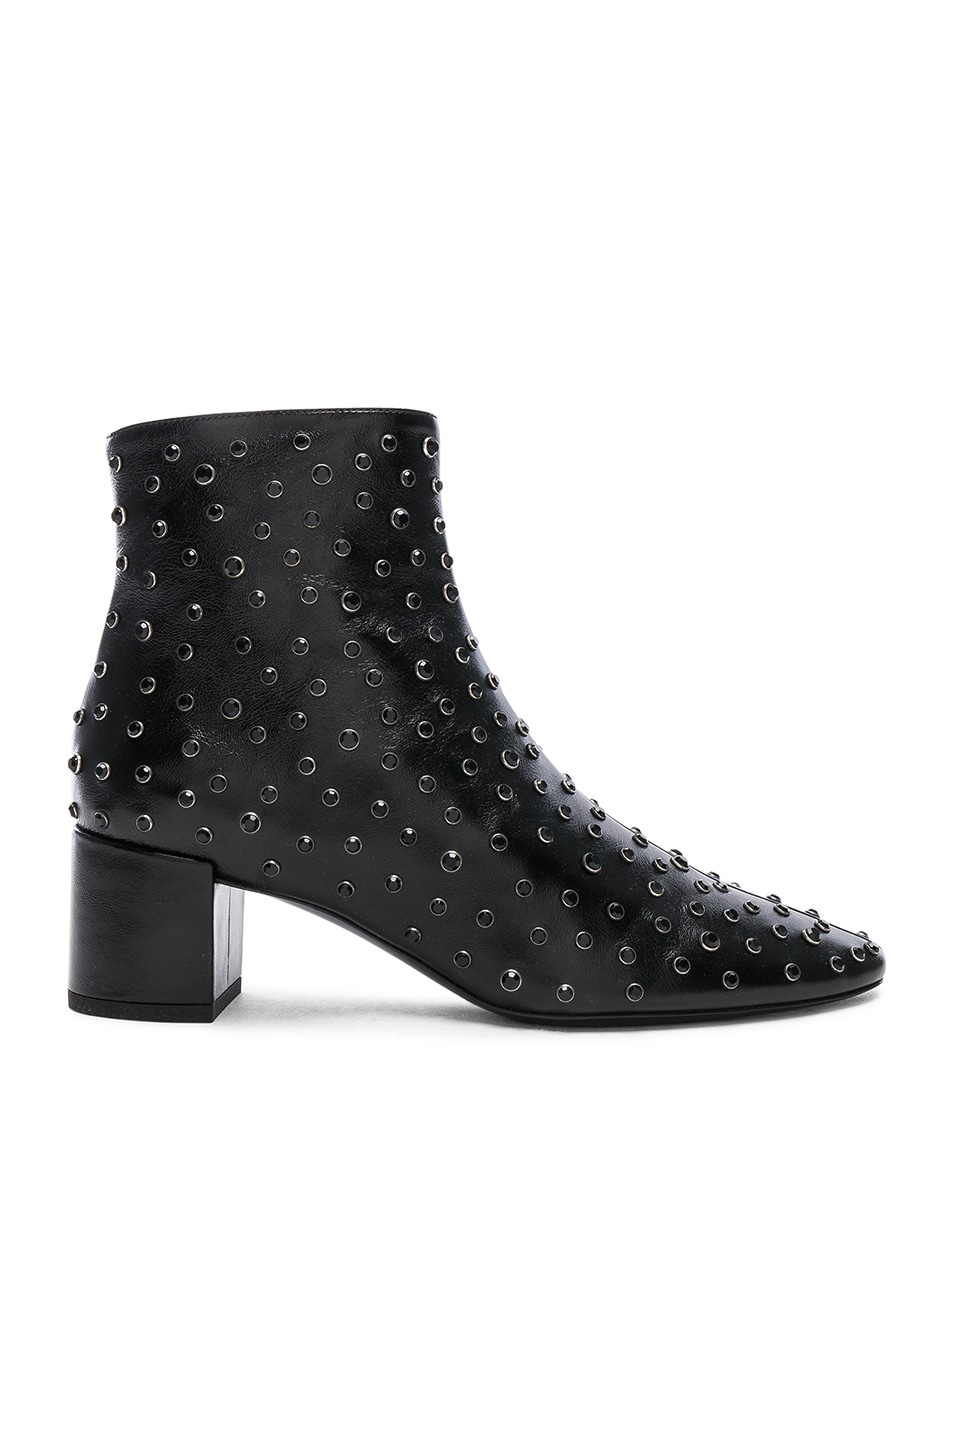 Image 1 of Saint Laurent Loulou Crystal Studded Leather Ankle Boots in Black